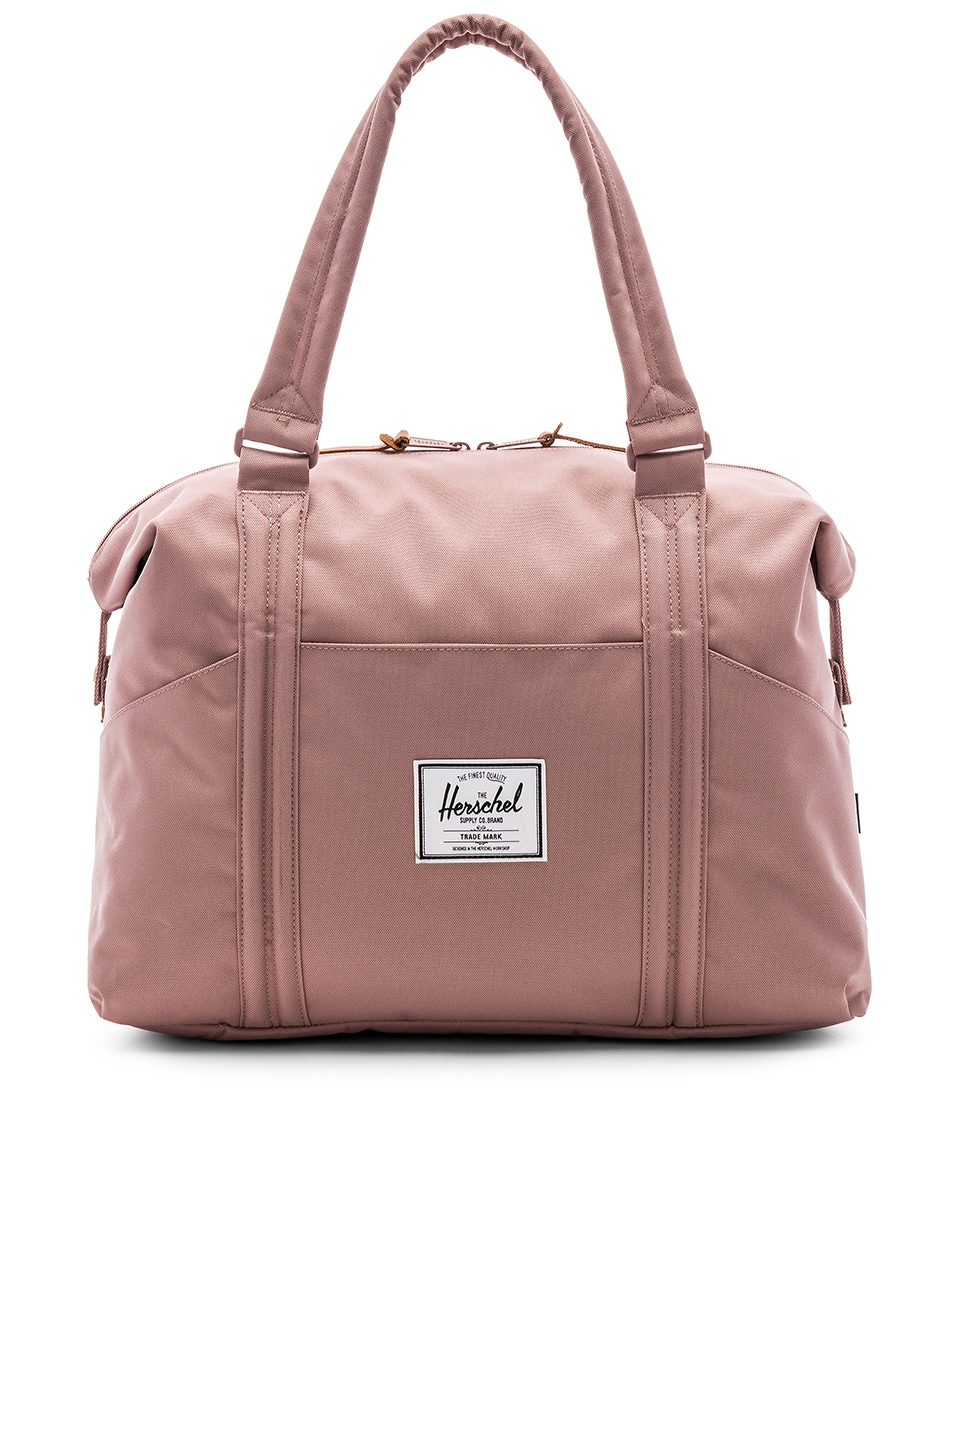 Herschel Supply Co. Strand in Ash Rose